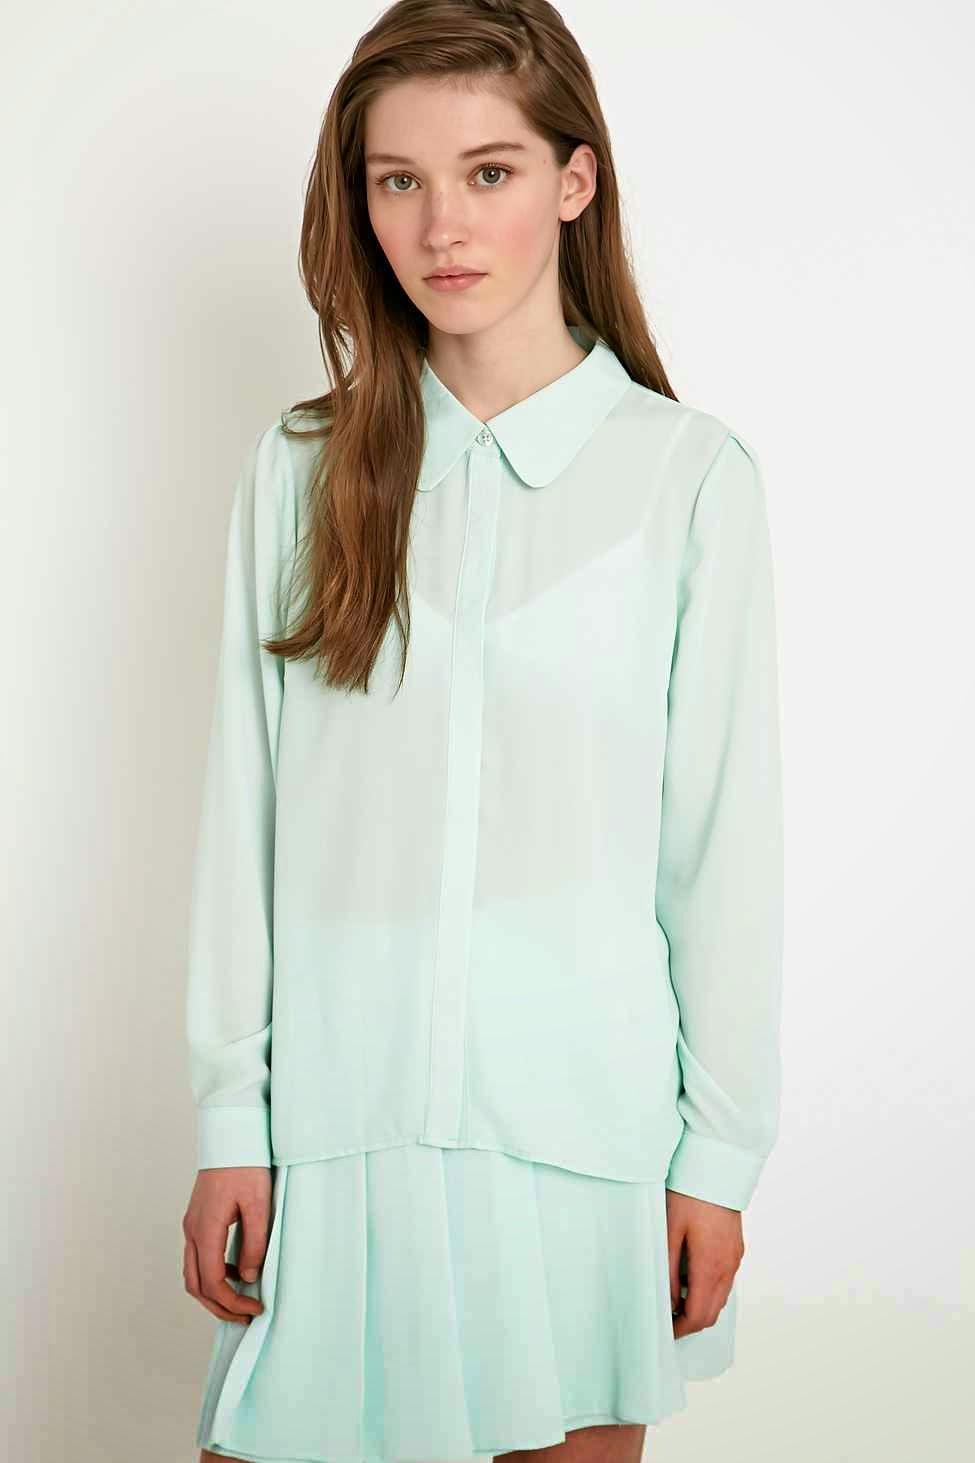 mint ladies shirt, mint ladies blouse, cooperative mint shirt,